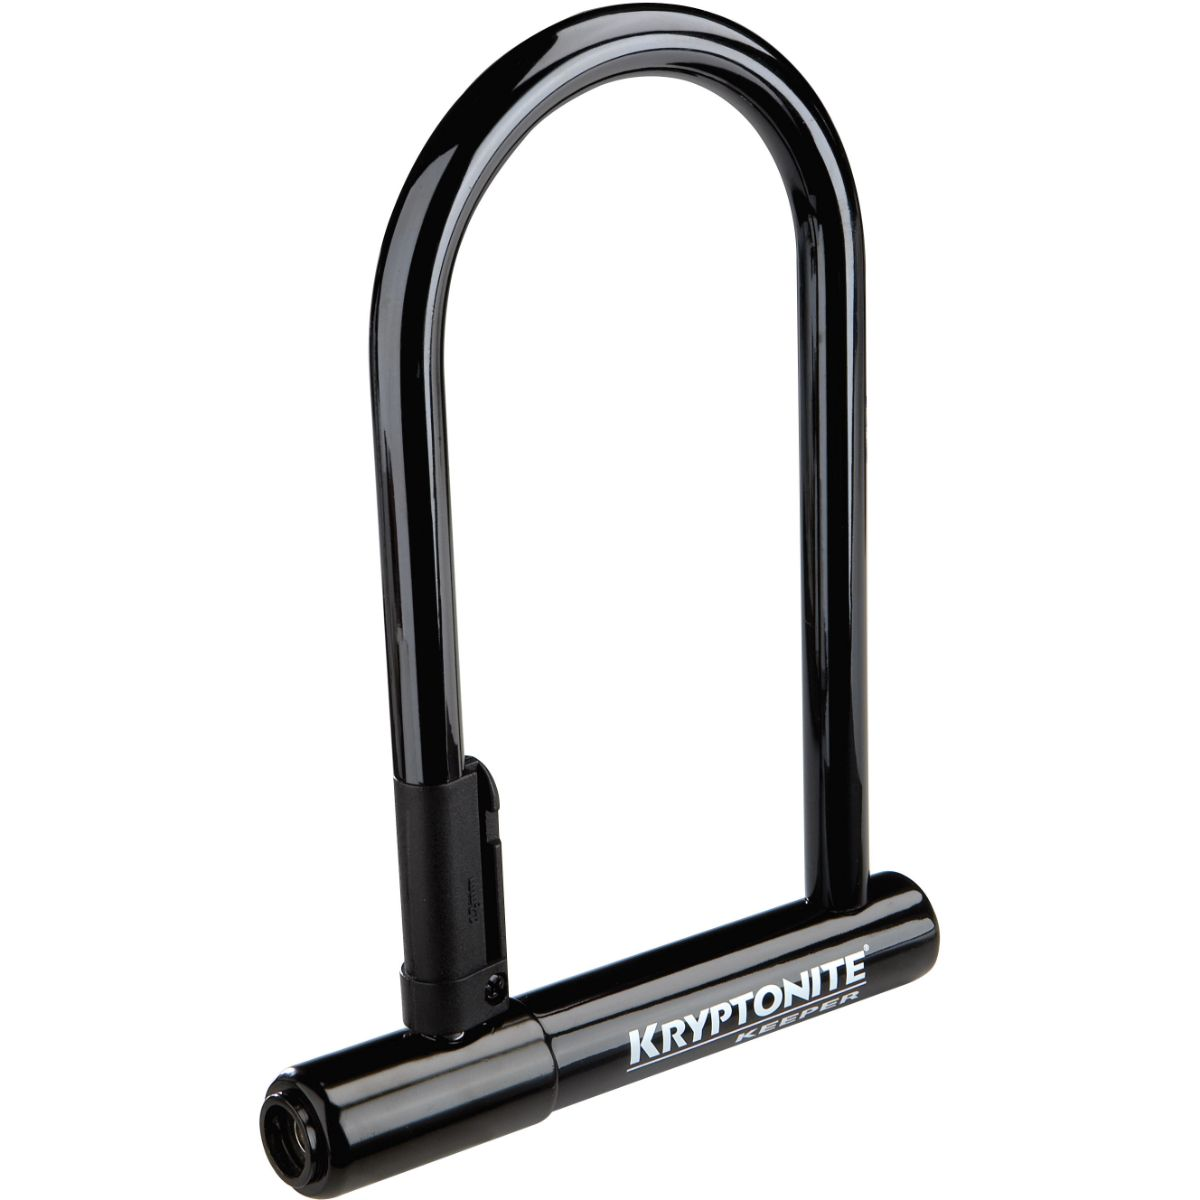 Kryptonite Keeper Original Standard U-Lock with Bracket